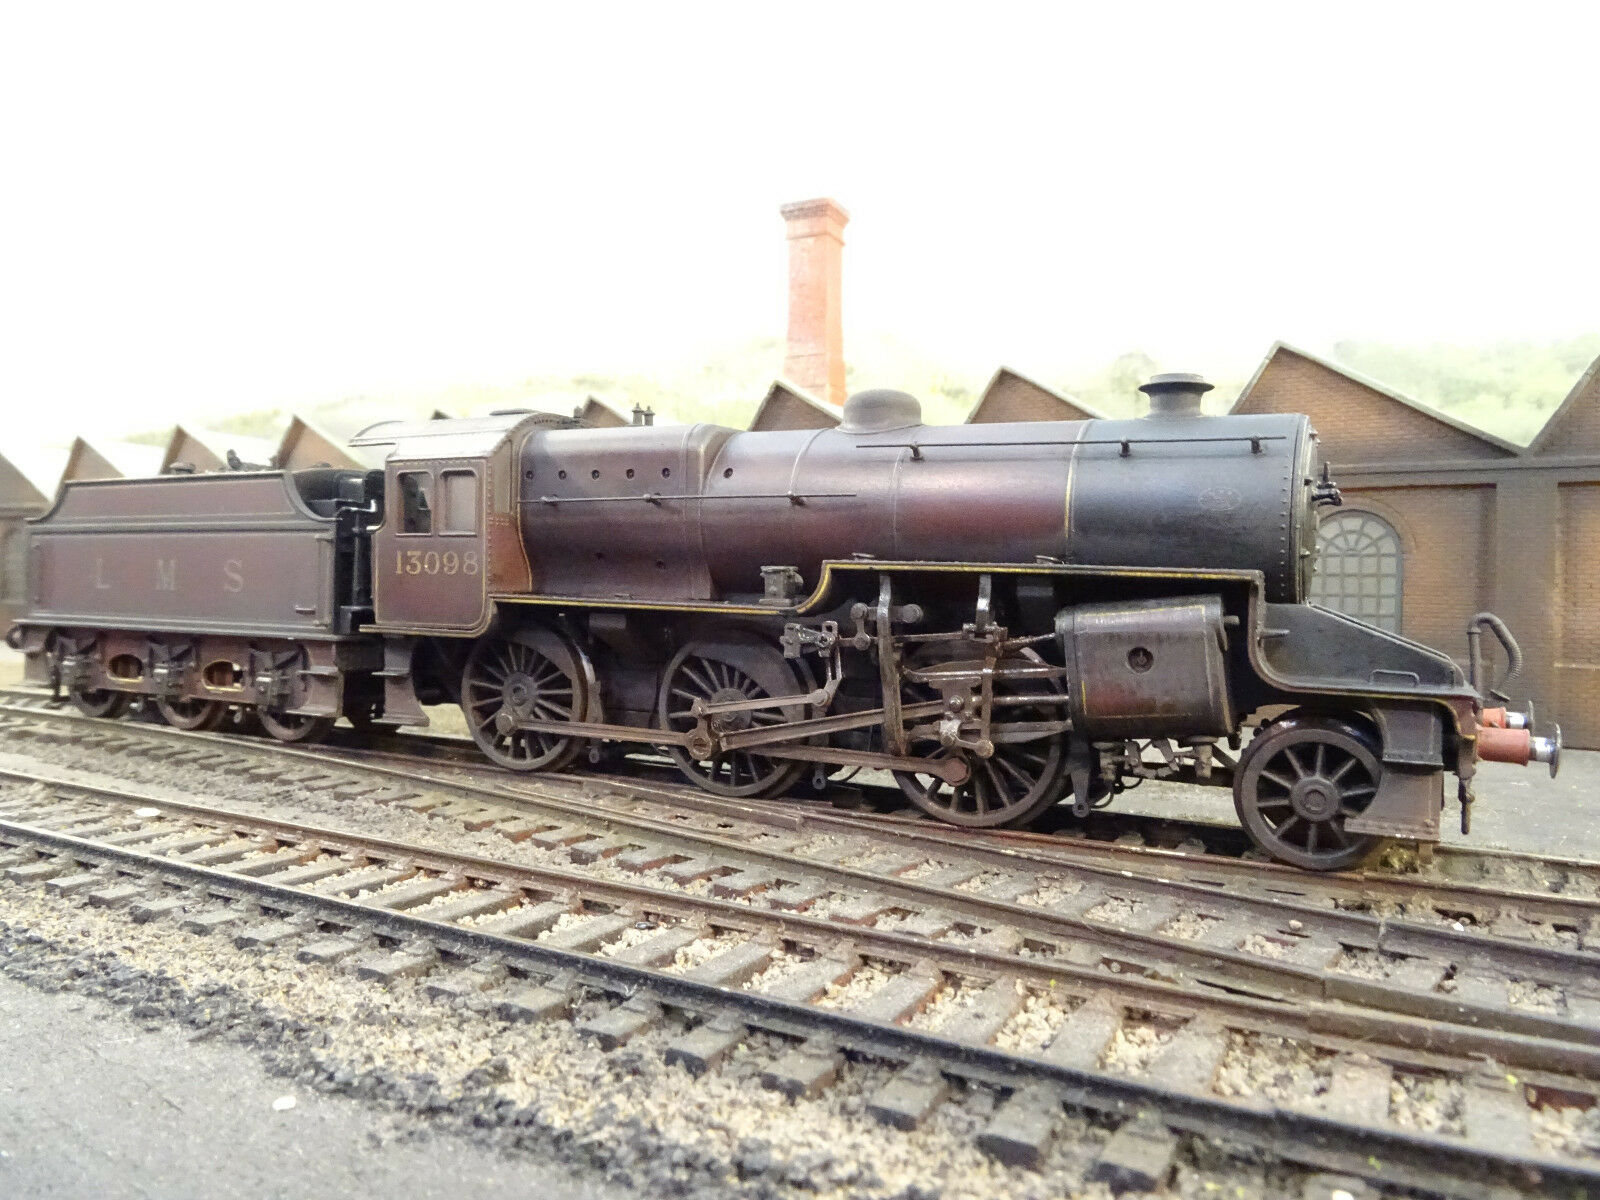 BACHMANN LMS CRAB 13098 (DETAILED LINESIDE WEATHERED) 32-175